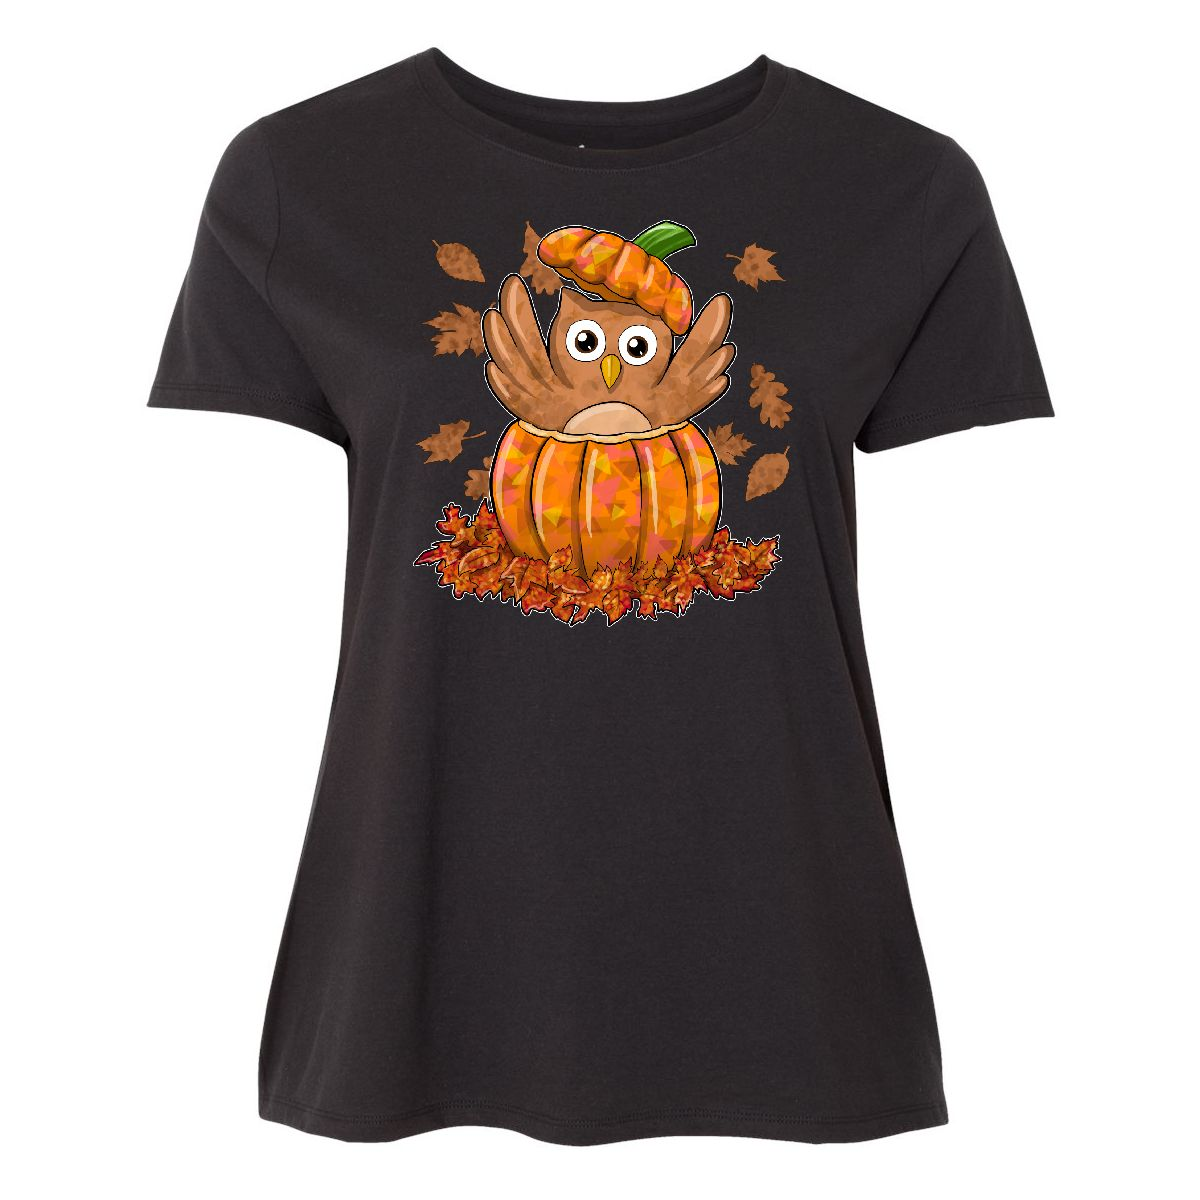 Inktastic Owl In A Pumpkin- Cute For Halloween And Women's Plus Size T-Shirt Fun